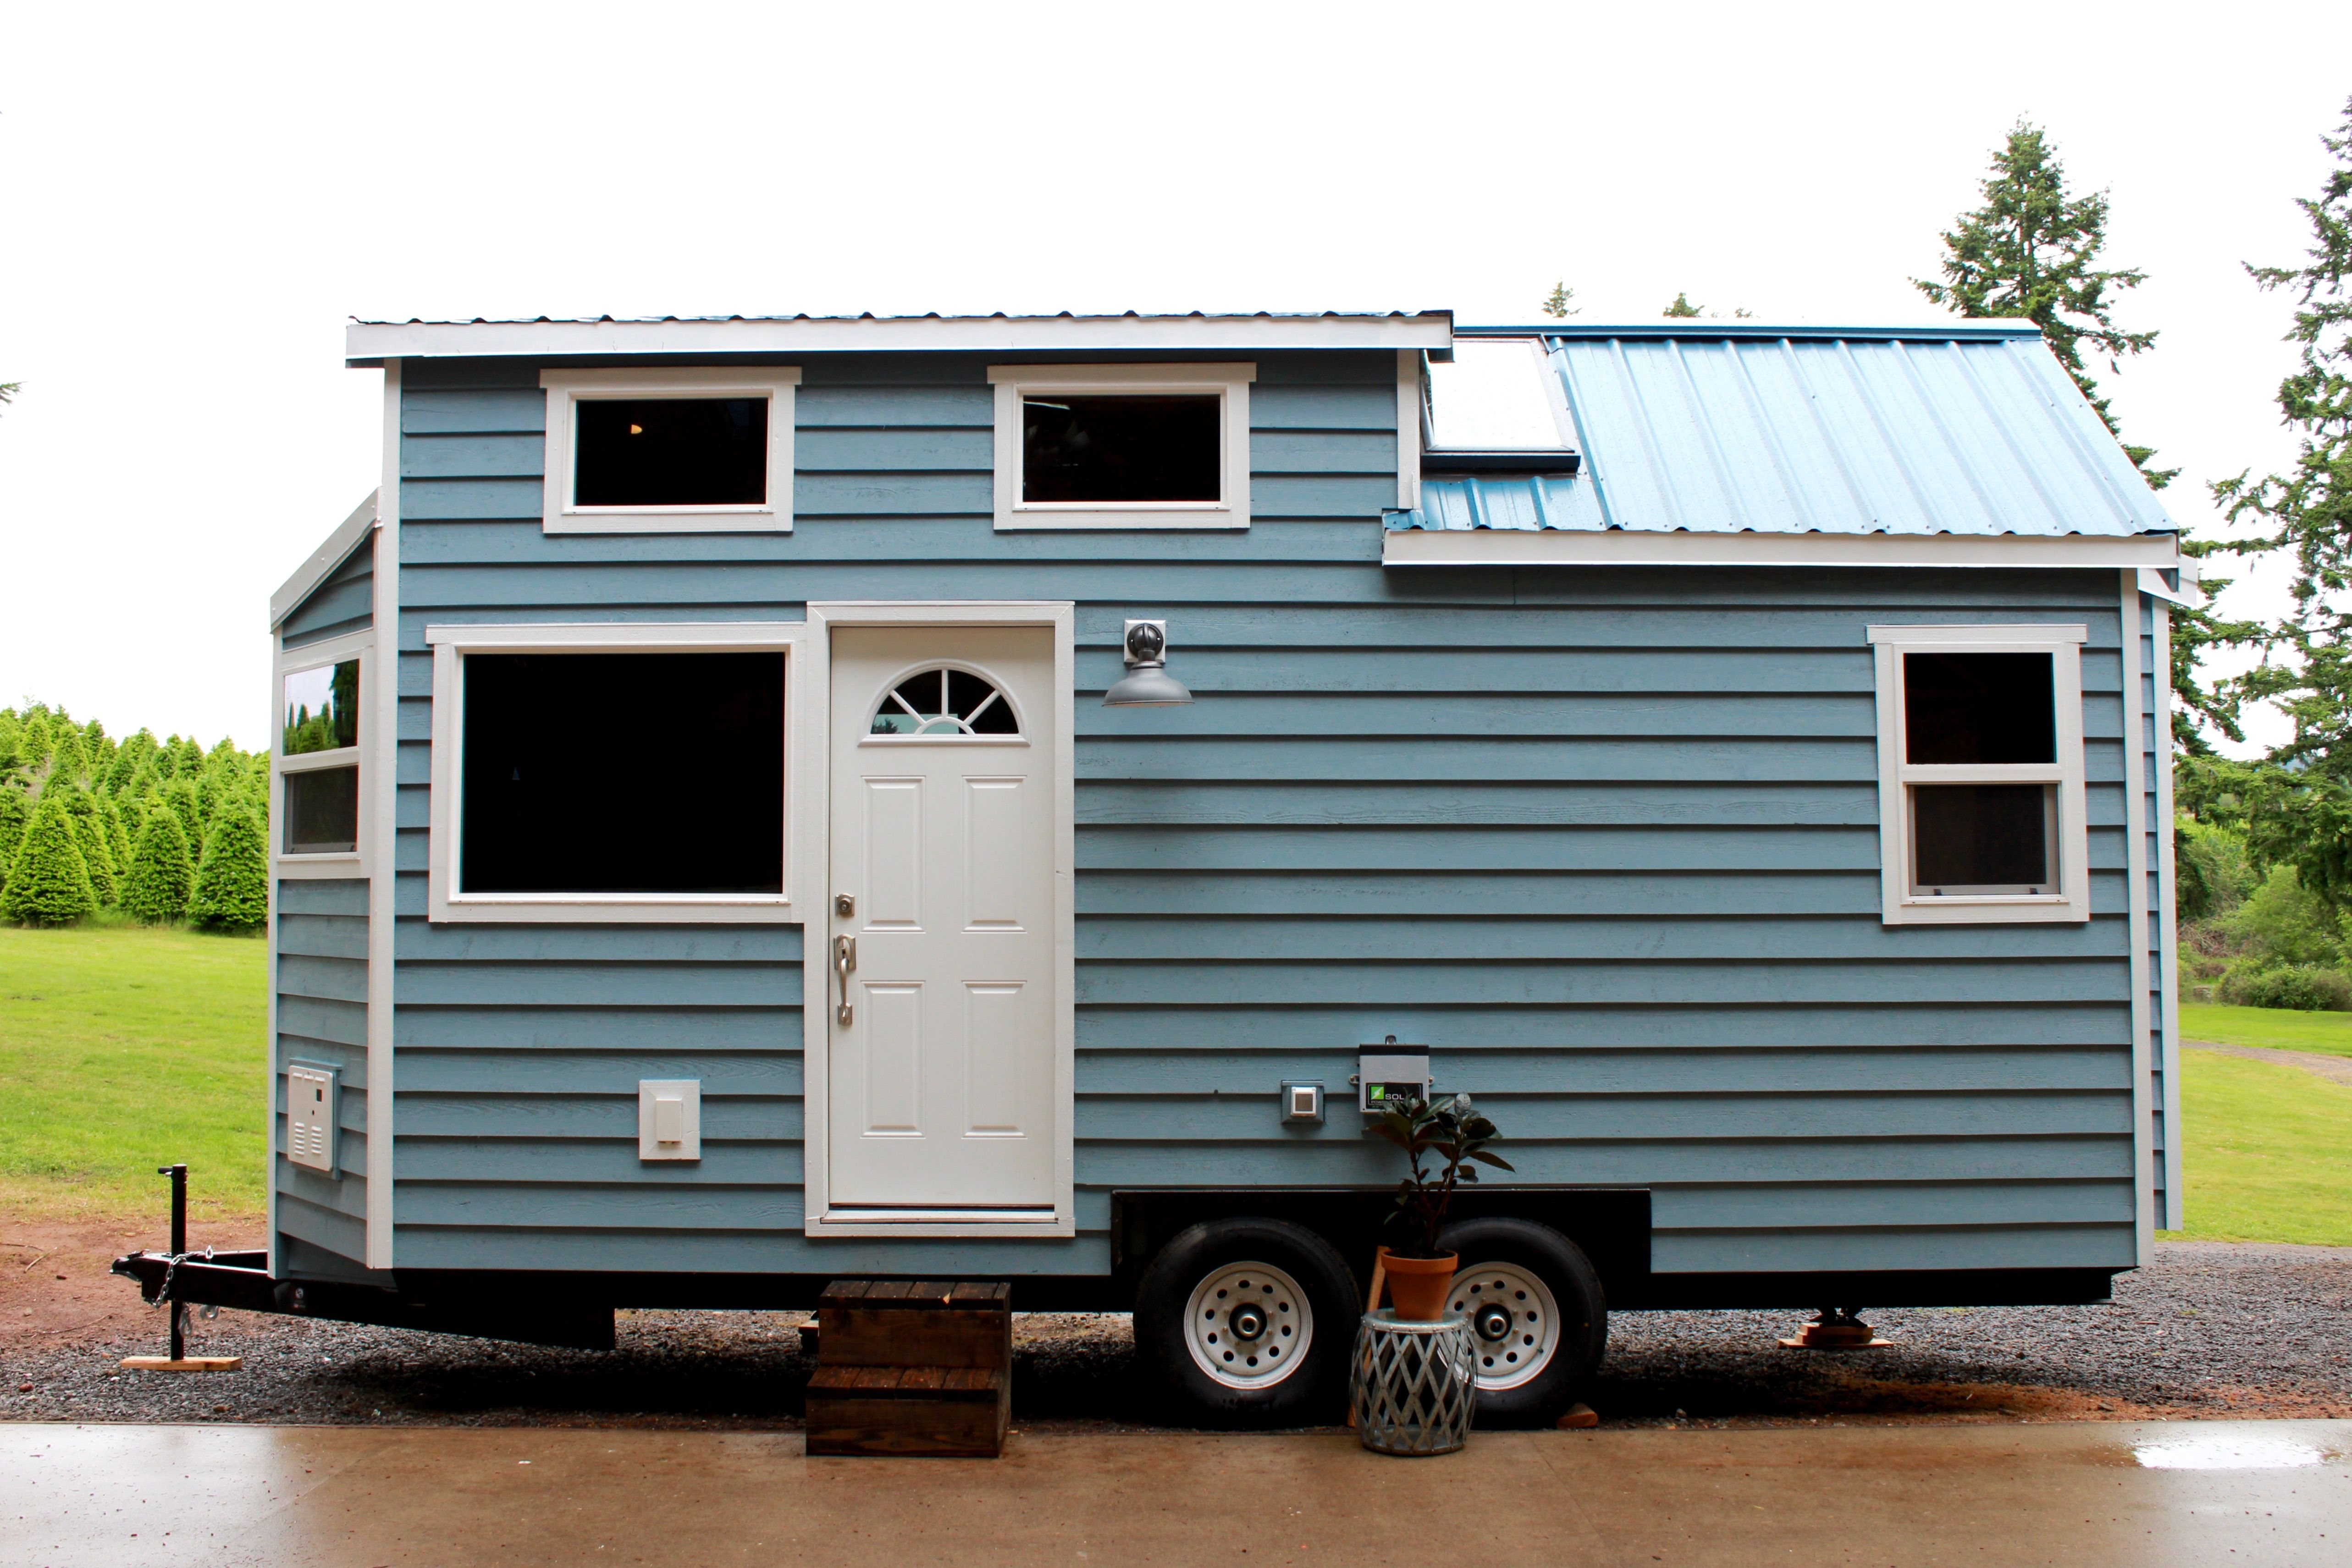 The sapphire house from tiny heirloom tiny house town - The Sapphire Is A One Off Creation From Tiny Heirlooms That Wowed Prospective Tiny House Buyers When It Was Listed For Sale Earlier This Year